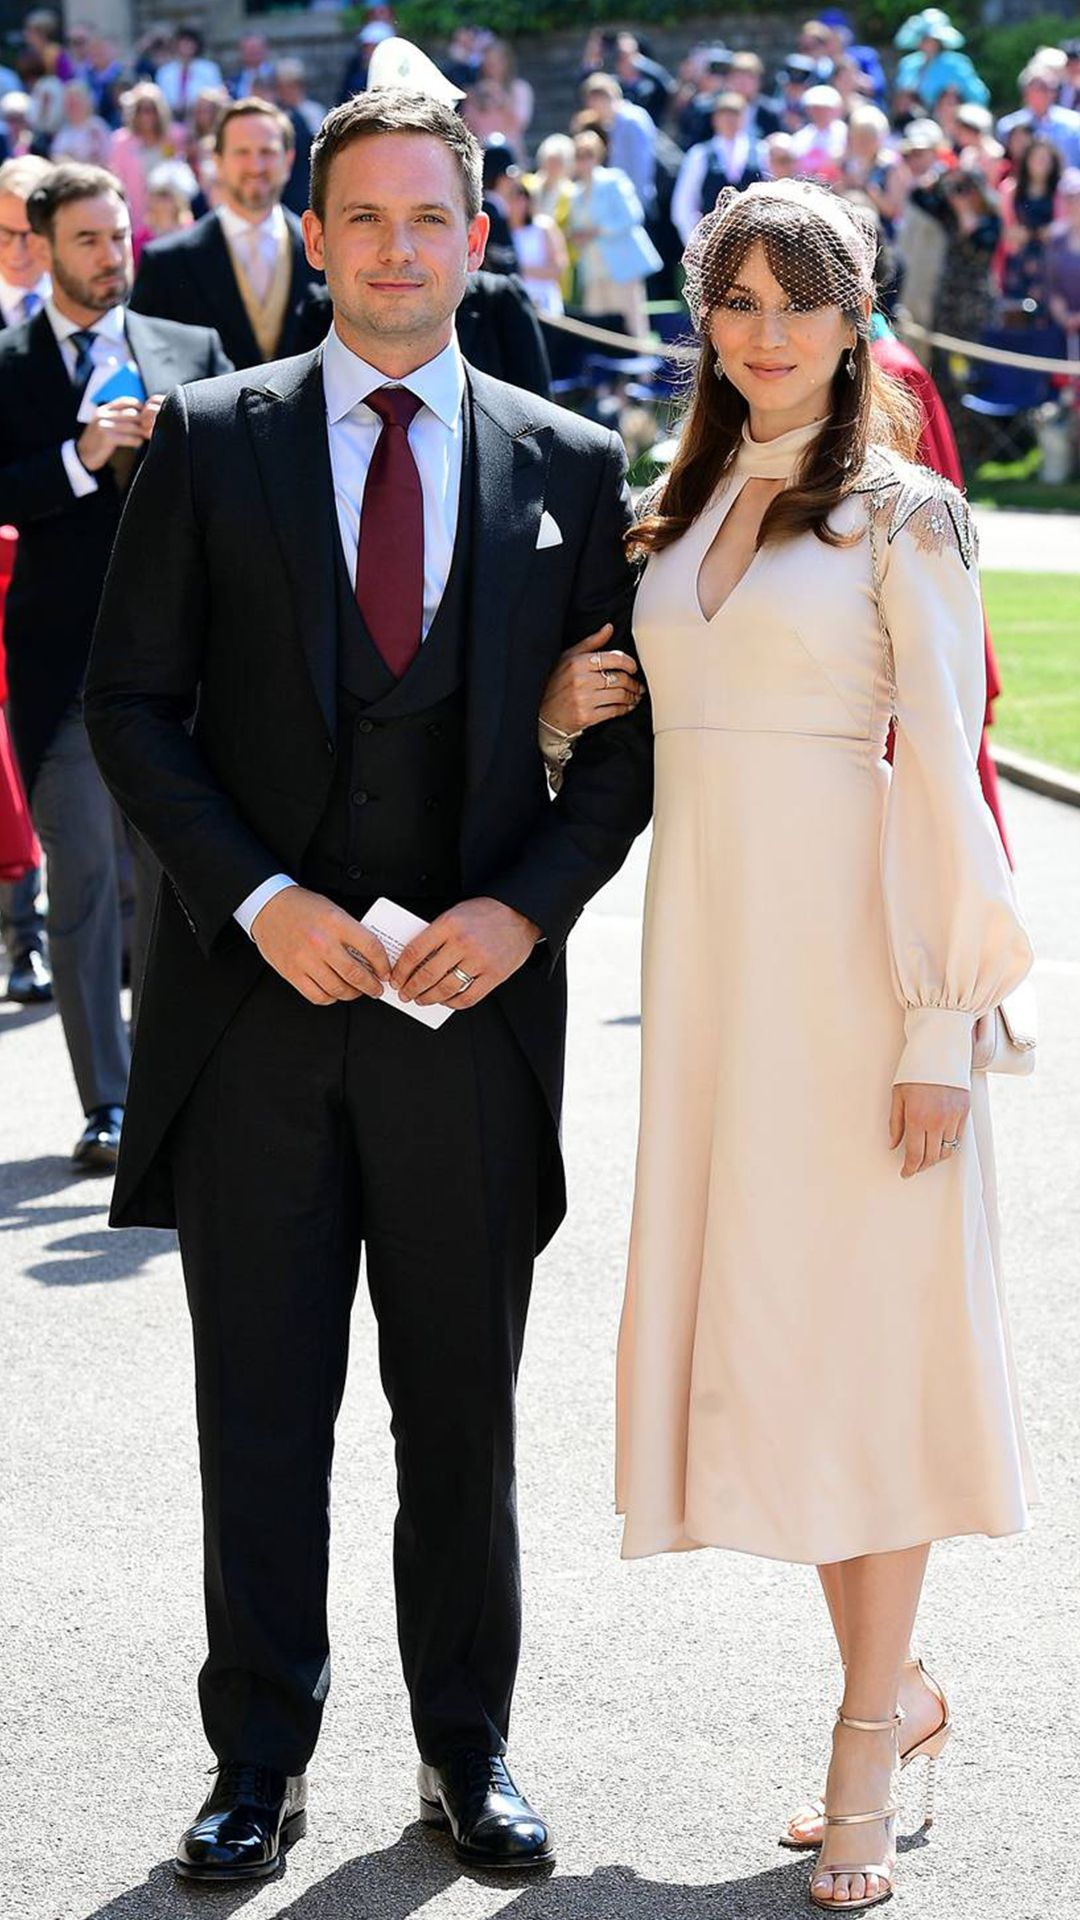 The Guests Of The Royal Wedding Patrick J Adams And Troian Bellisario Royal Wedding Outfits Royal Wedding Guests Outfits Wedding Attire Guest